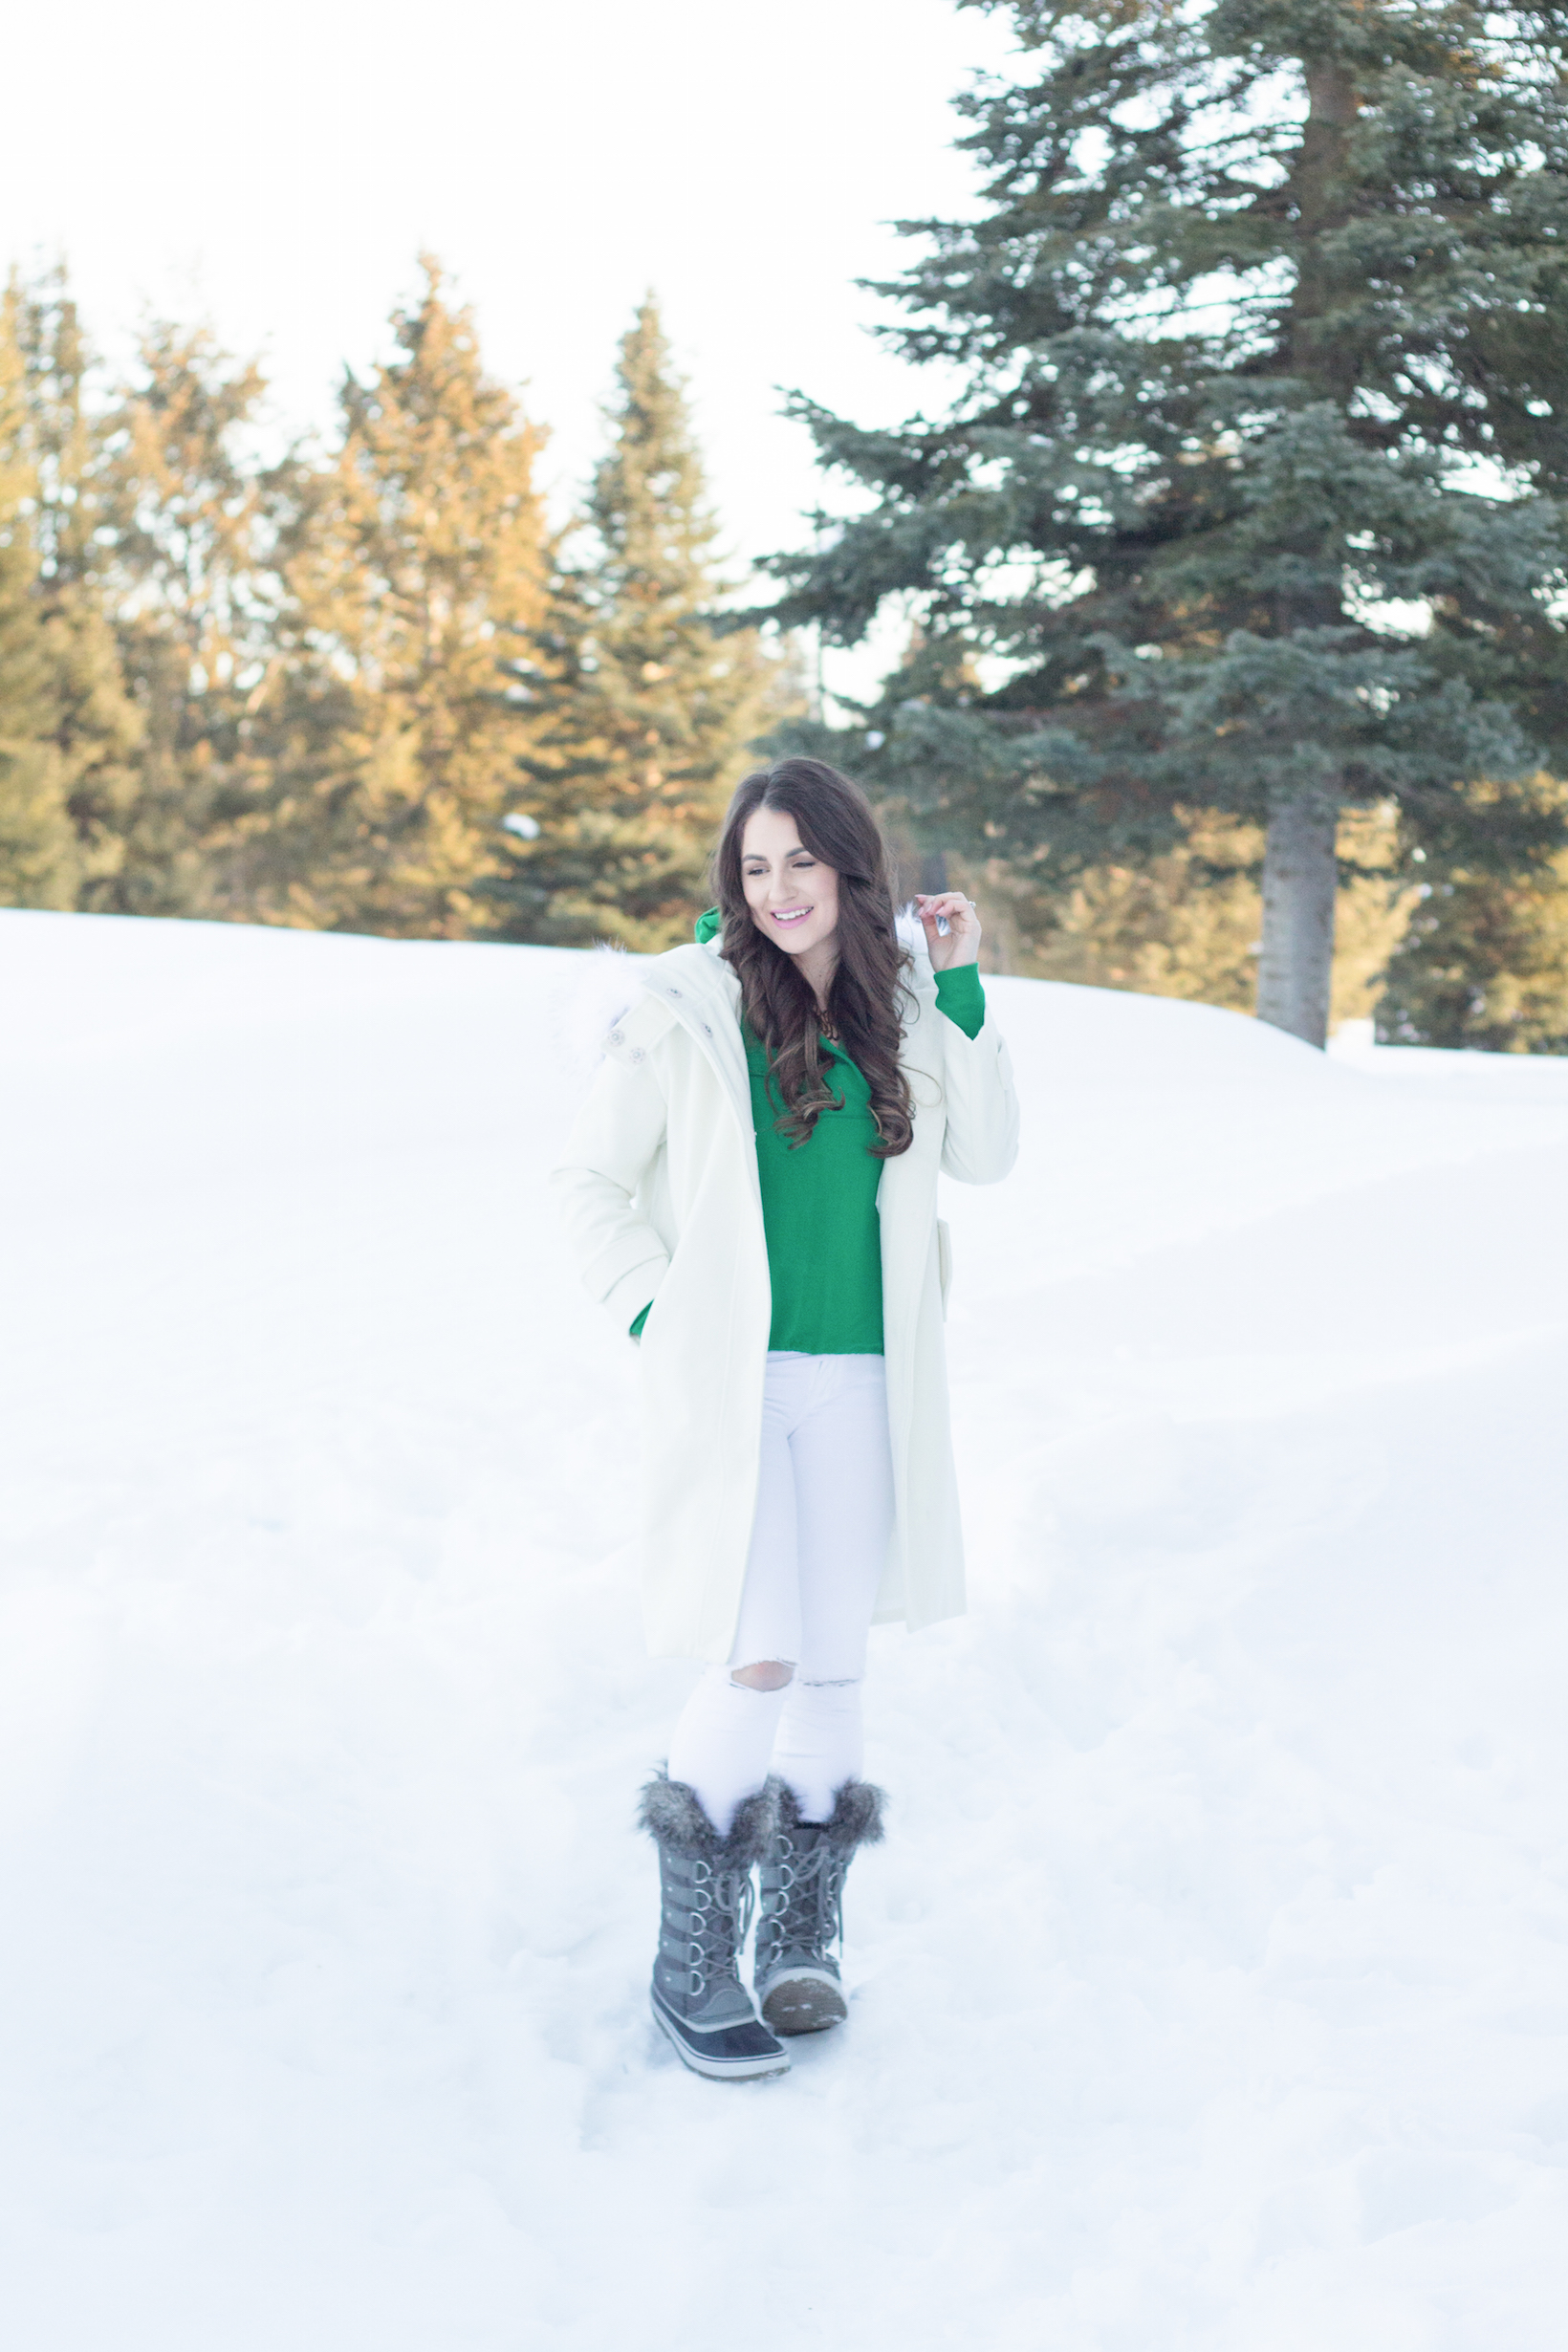 Dressing in green for Spring, sharing how to transition between Winter and Spring.